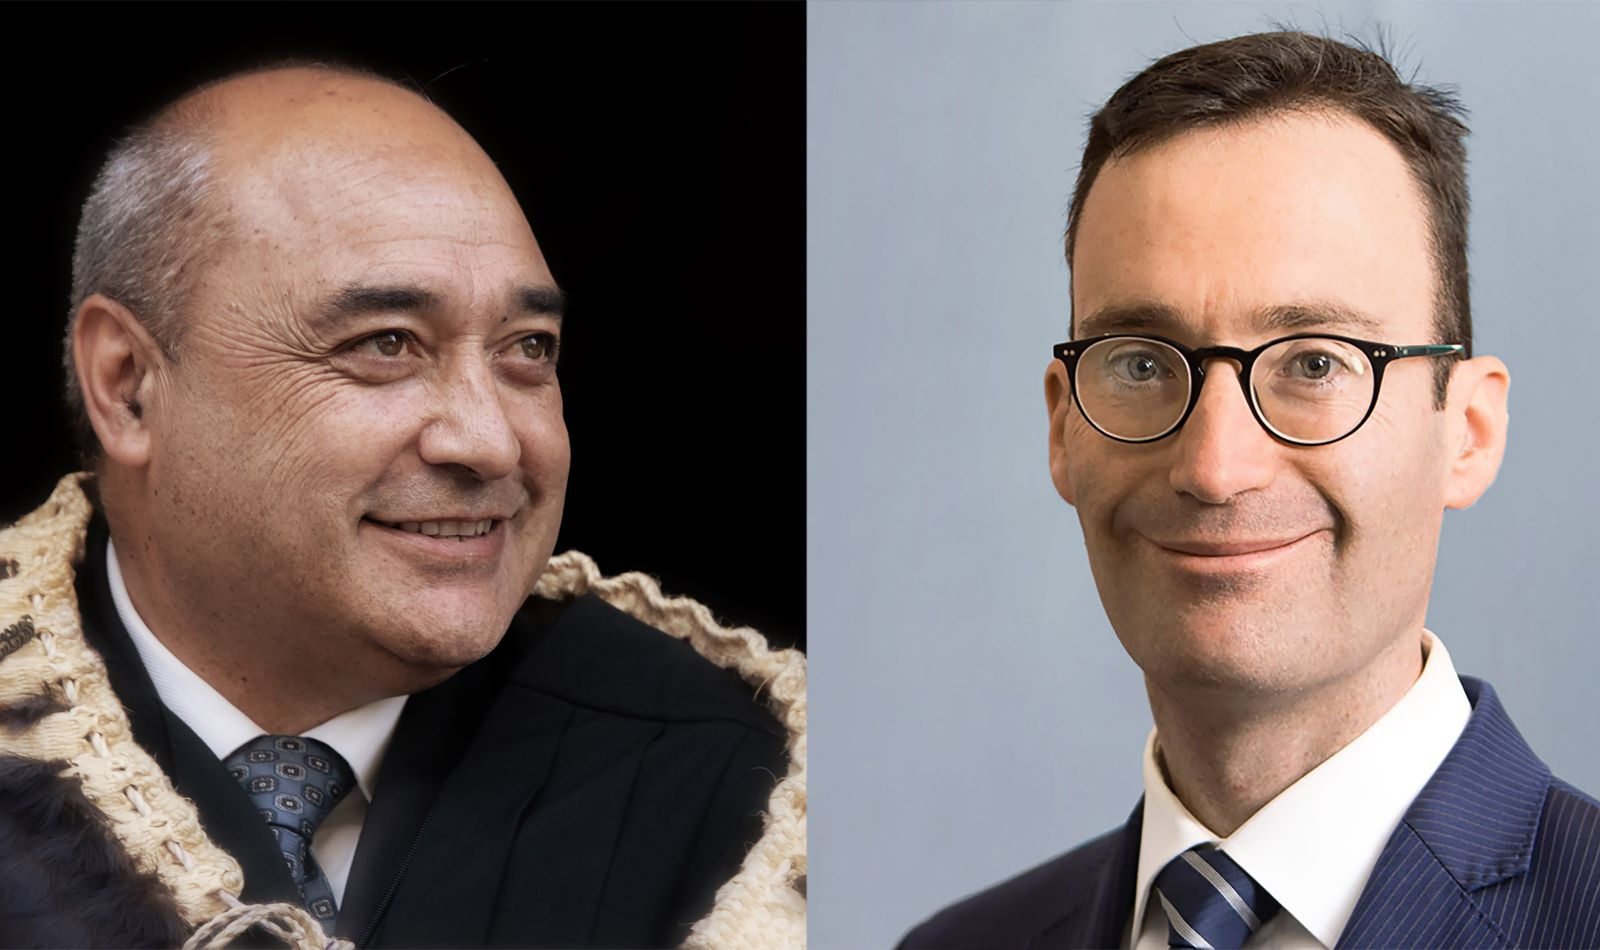 Left: Judge Taumaunu during a special court sitting held at Whangara Marae (near Gisborne) to mark his appointment. Right: Daniel Kalderimis.